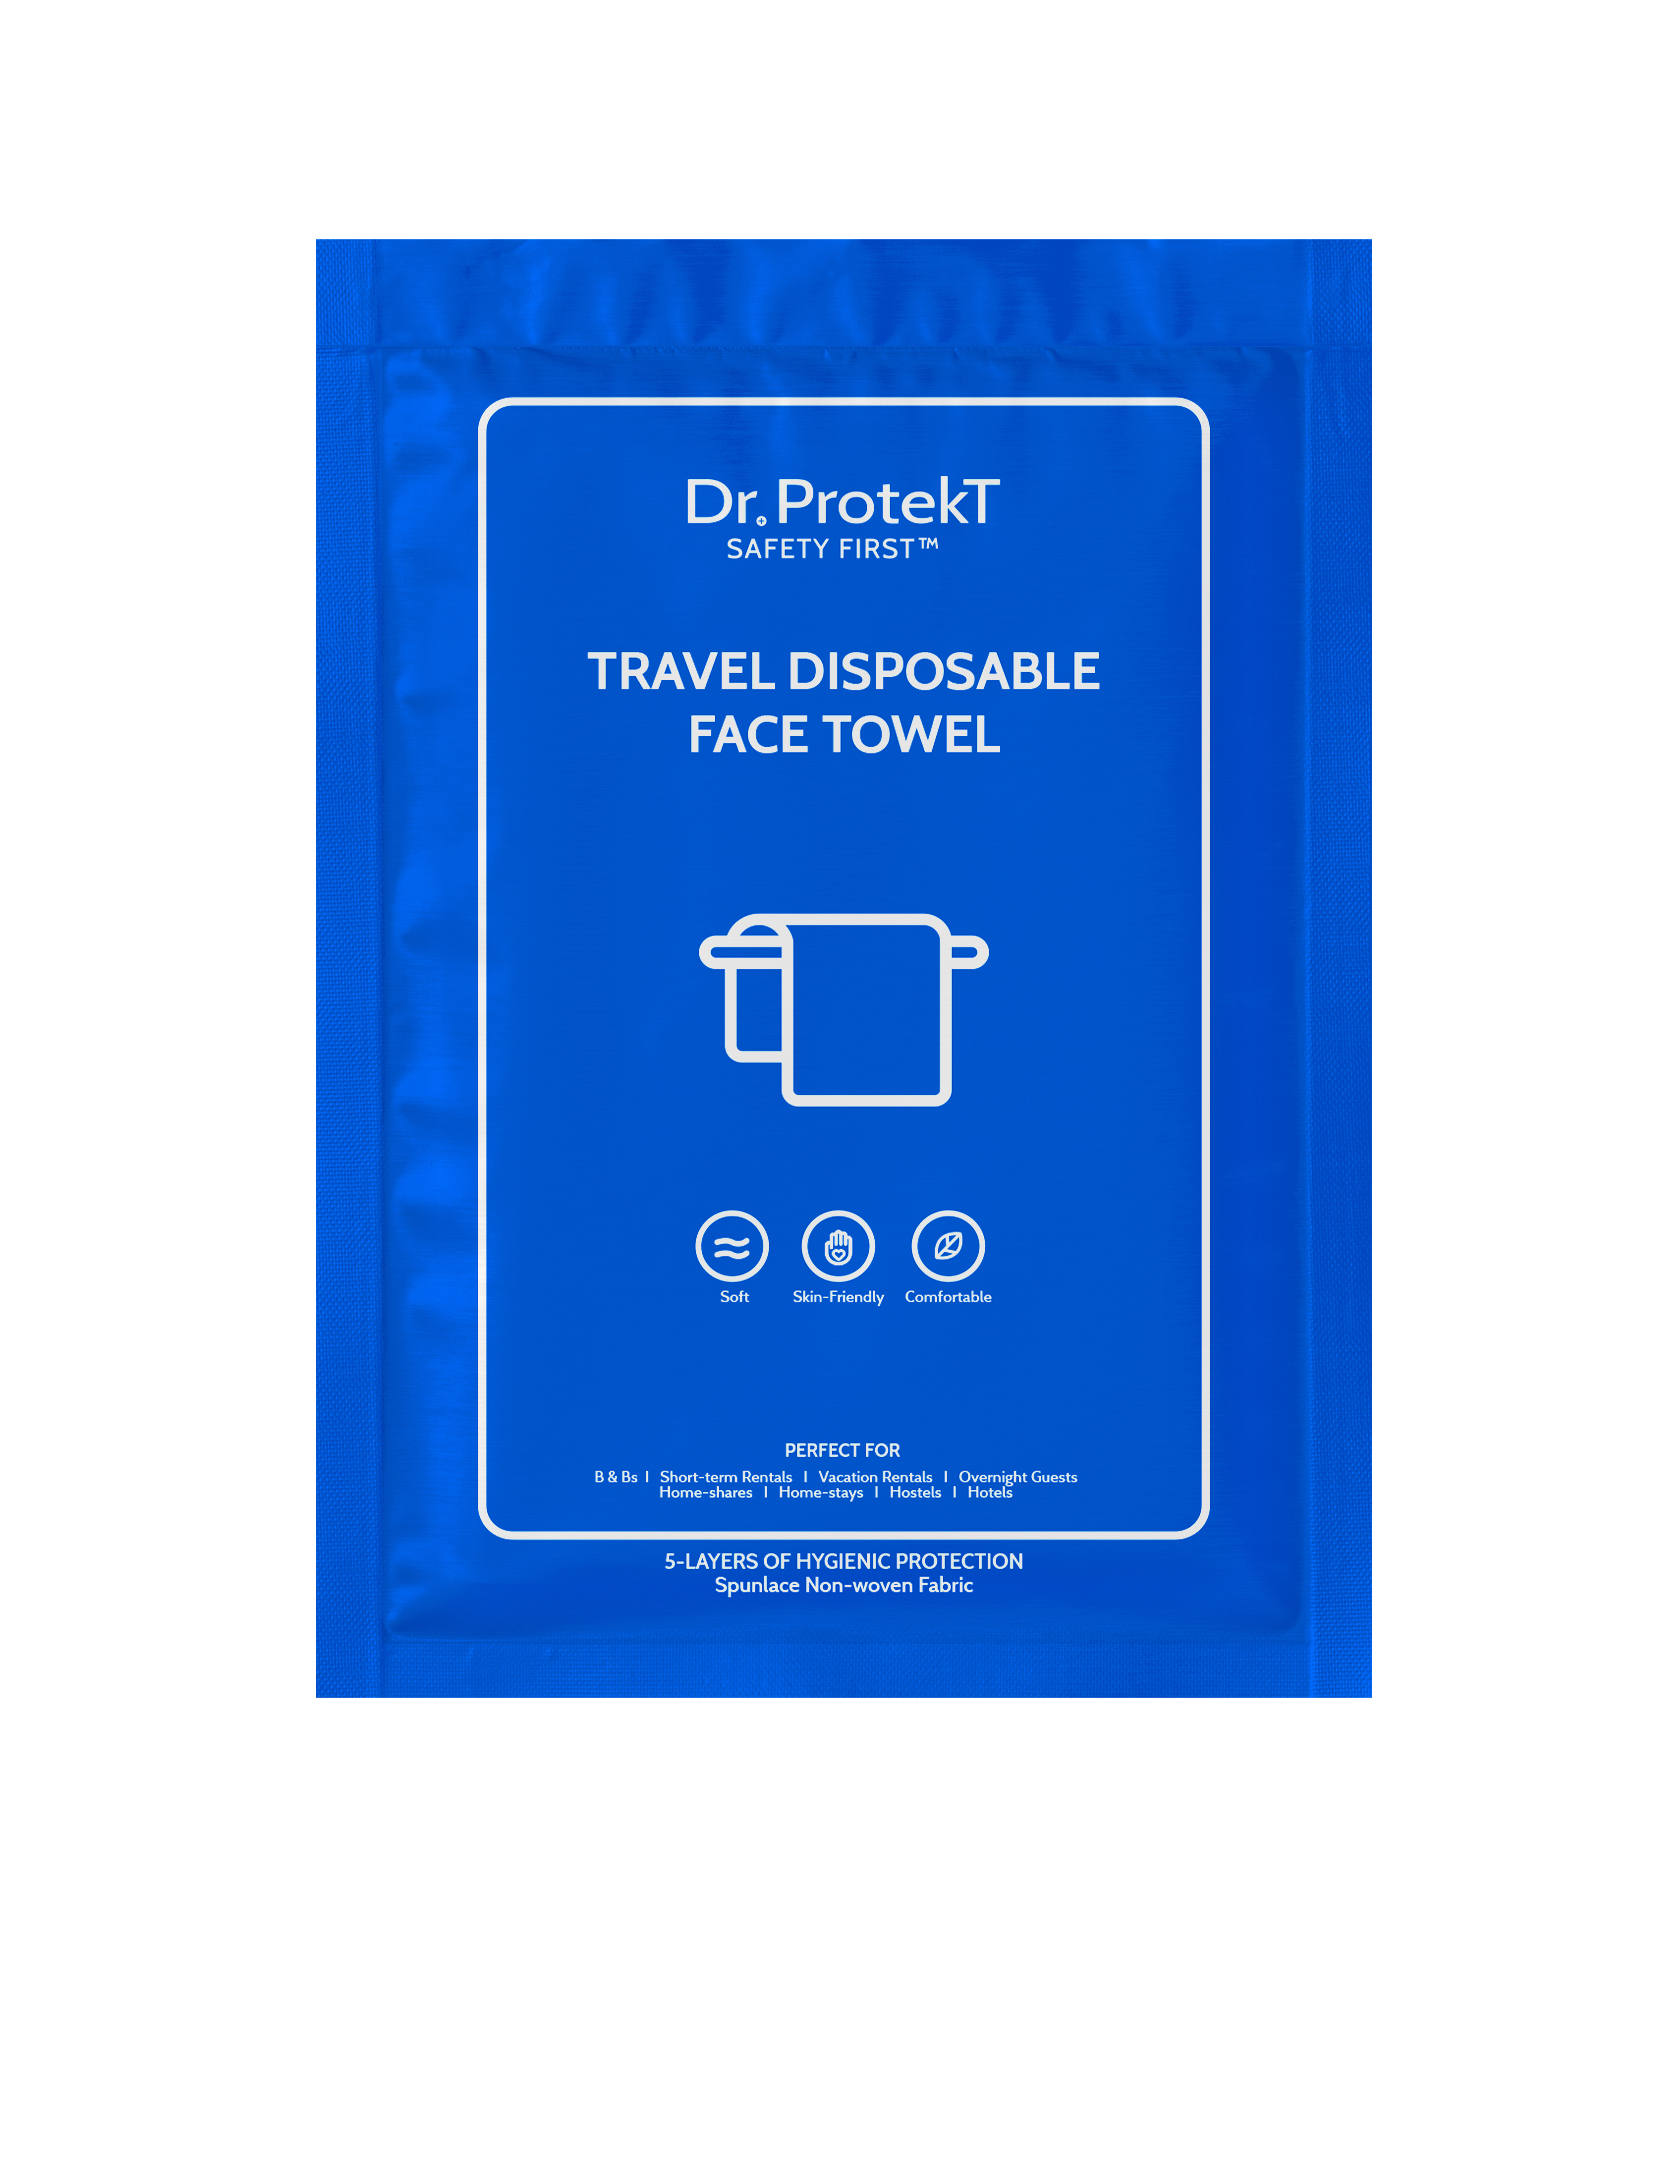 TRAVEL DISPOSABLE FACE TOWEL